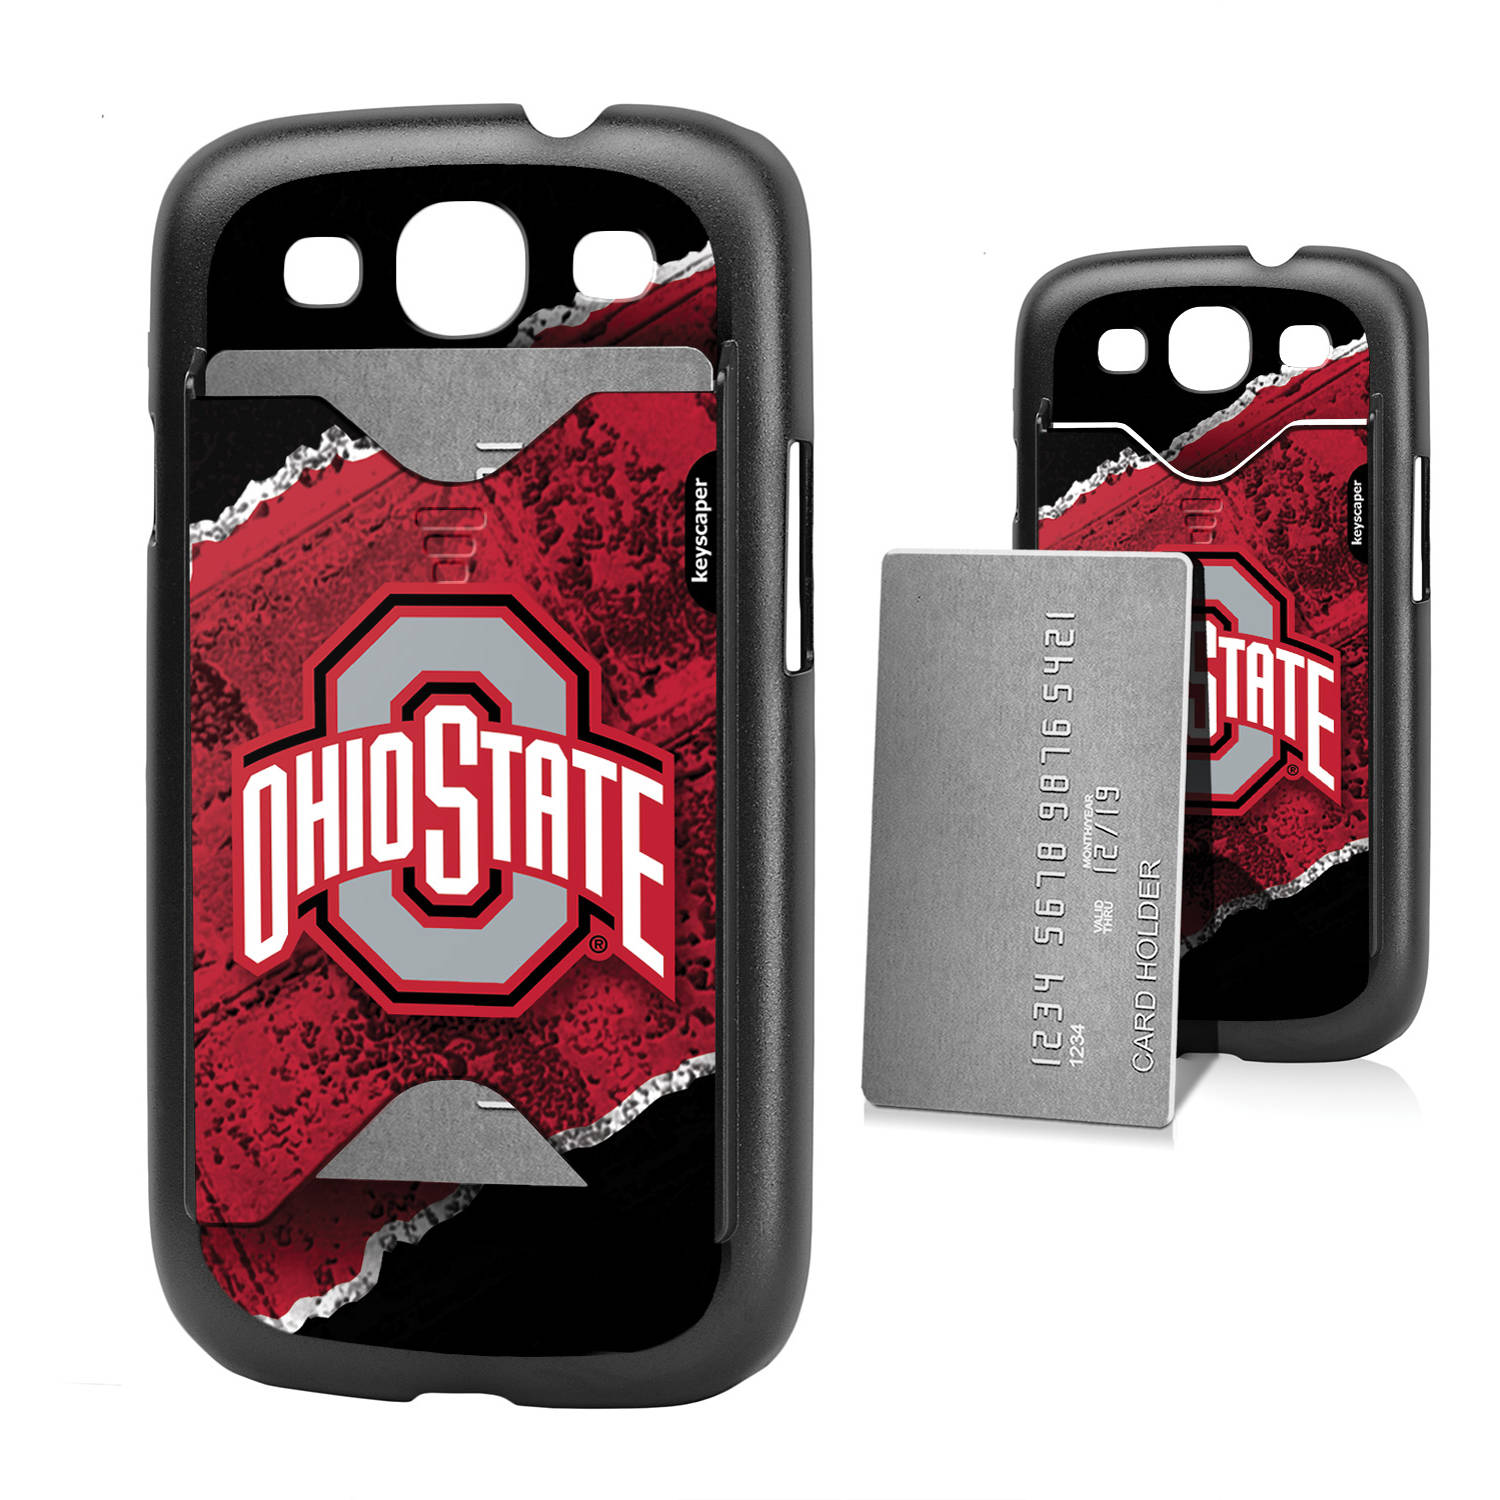 Ohio State Buckeyes Galaxy S3 Credit Card Case